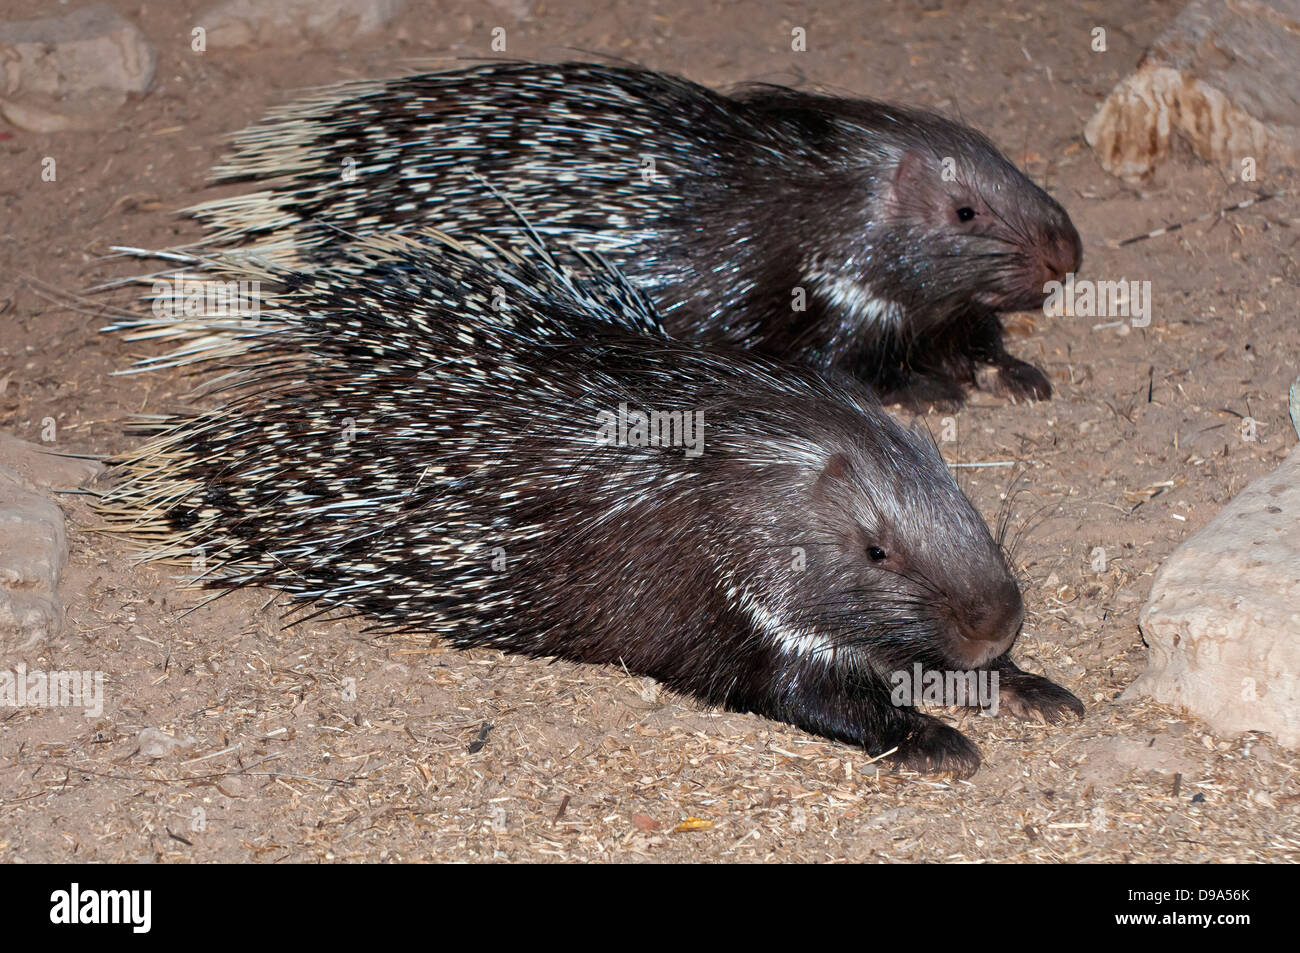 Couple of Crested porcupine, Hystrix cristata - Stock Image